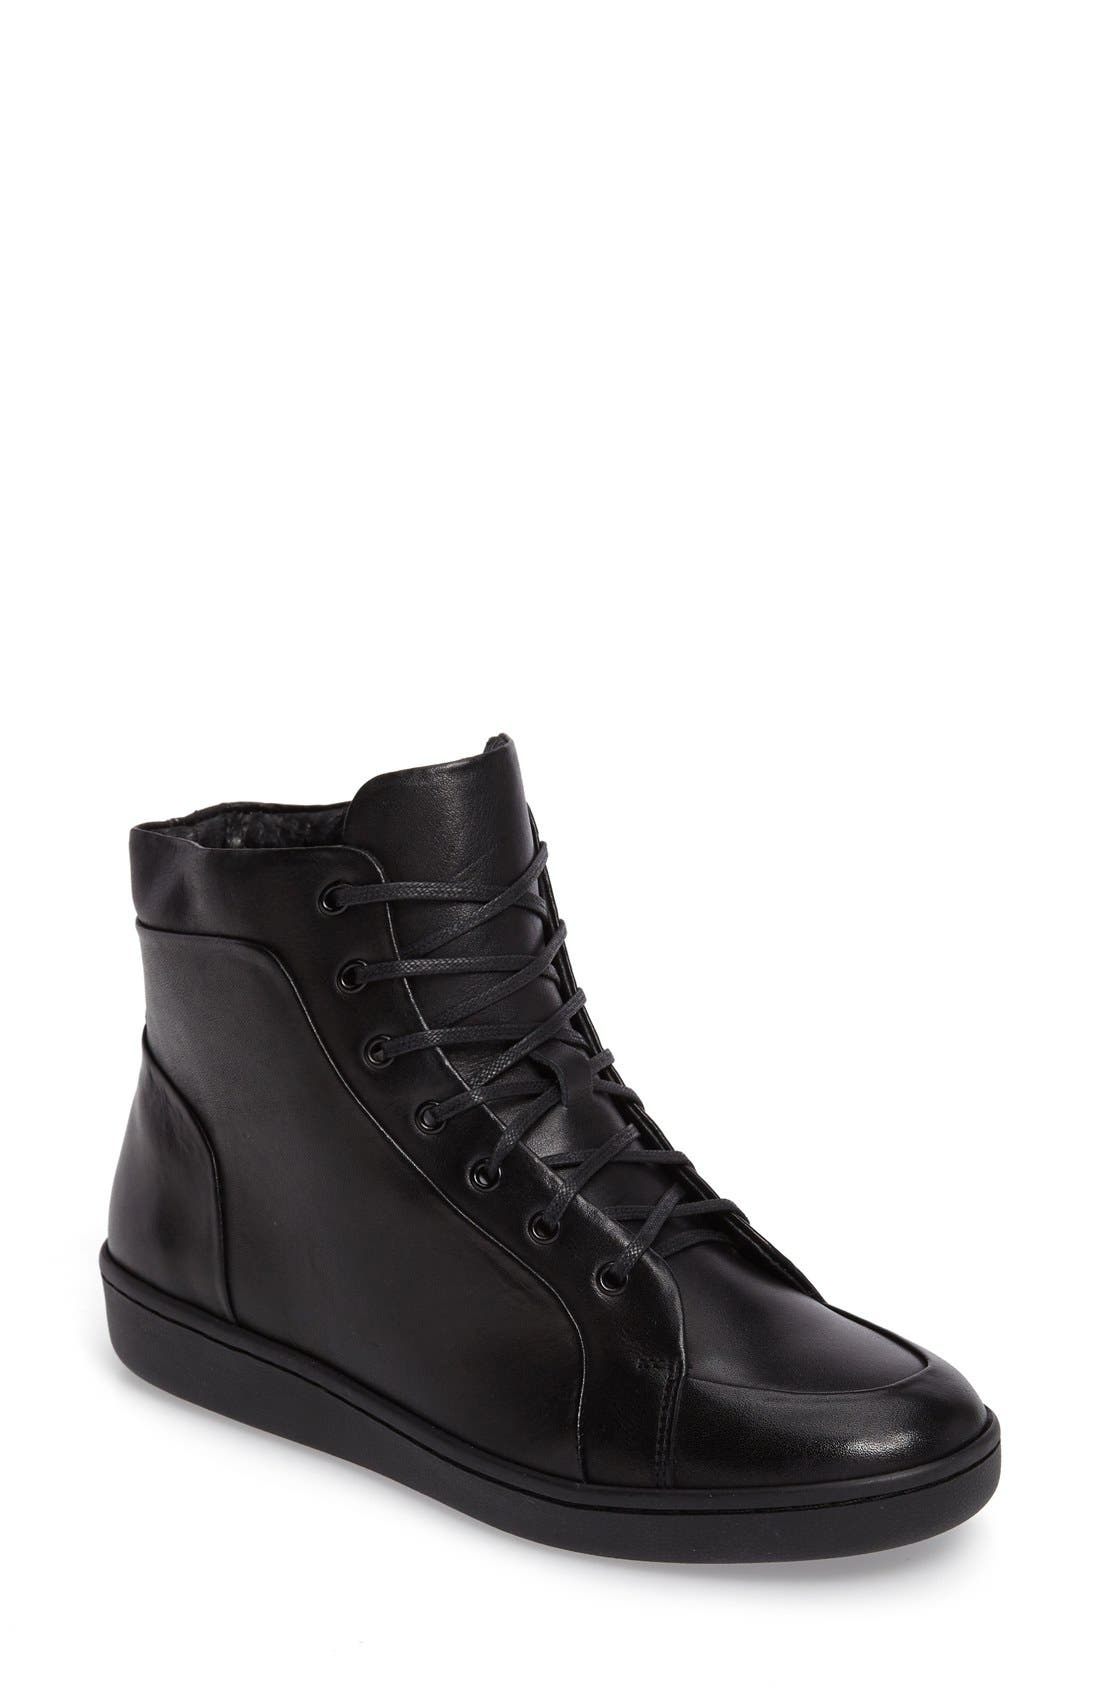 Main Image - Kenneth Cole New York Molly High Top Sneaker (Women)